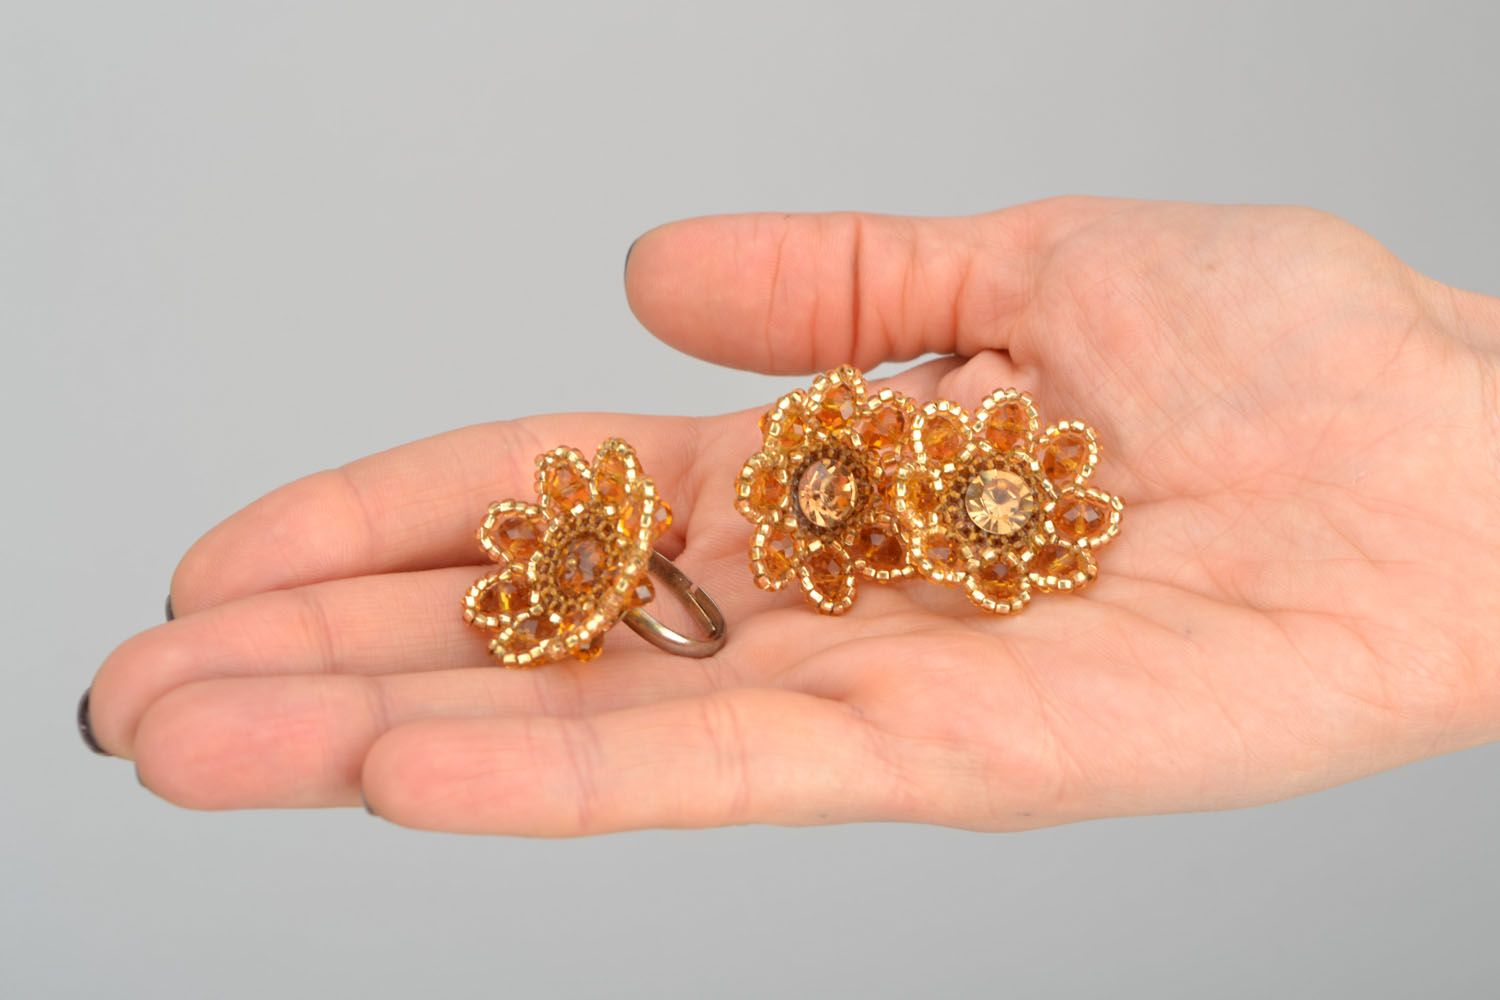 Stud earrings and ring made of beads photo 2